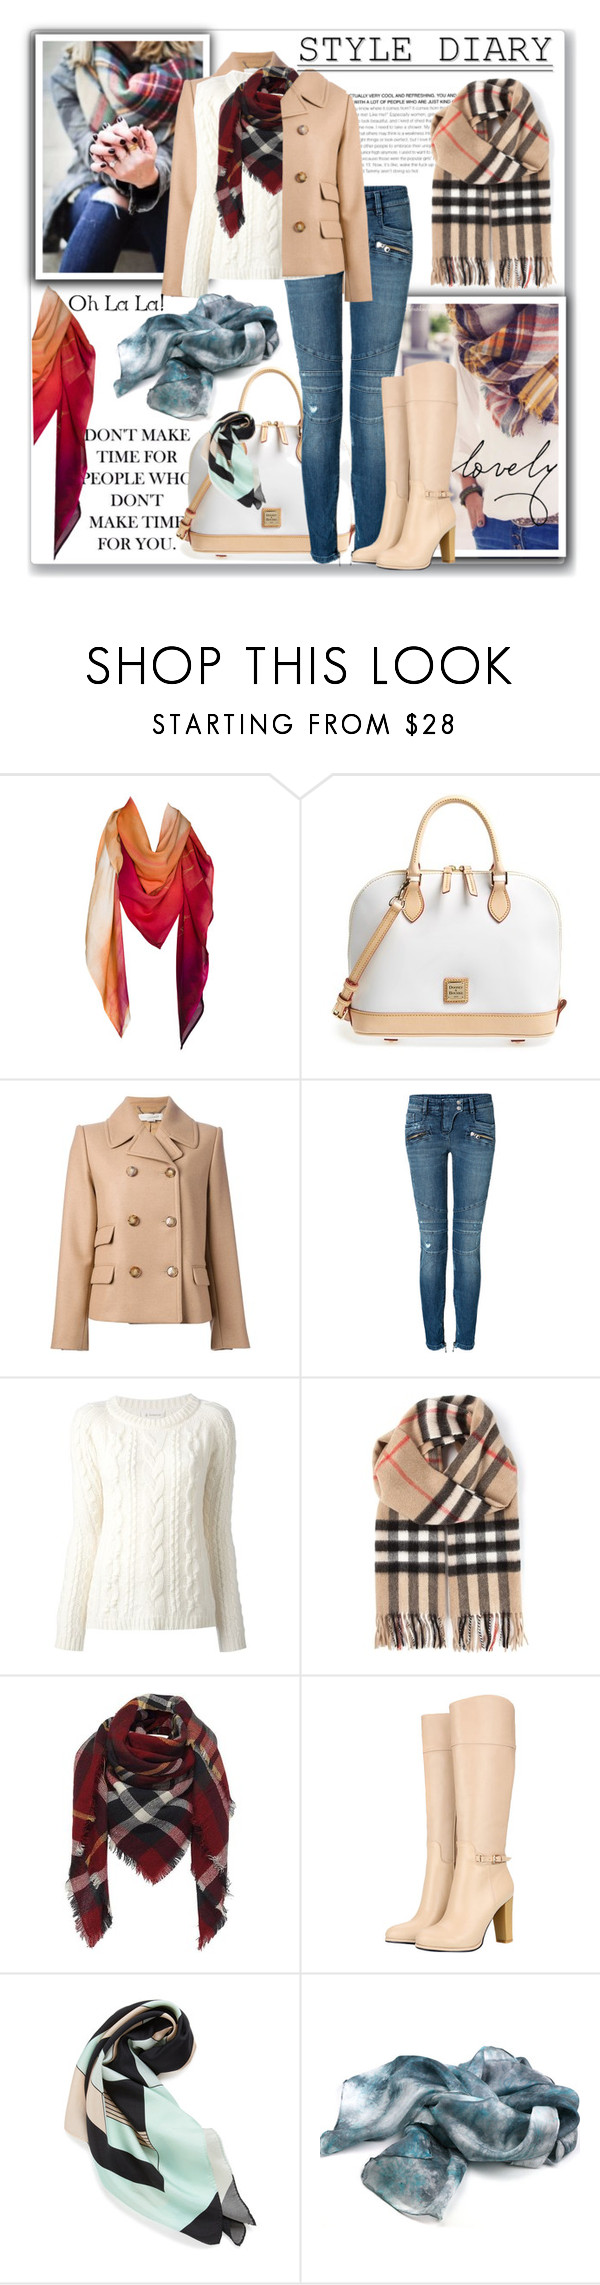 """""""There Can't Be Too Many Scarves for Fall"""" by katyusha-kis ❤ liked on Polyvore featuring WALL, Leona Lengyel, Dooney & Bourke, STELLA McCARTNEY, Balmain, Dondup, Burberry and Louisa Parris"""